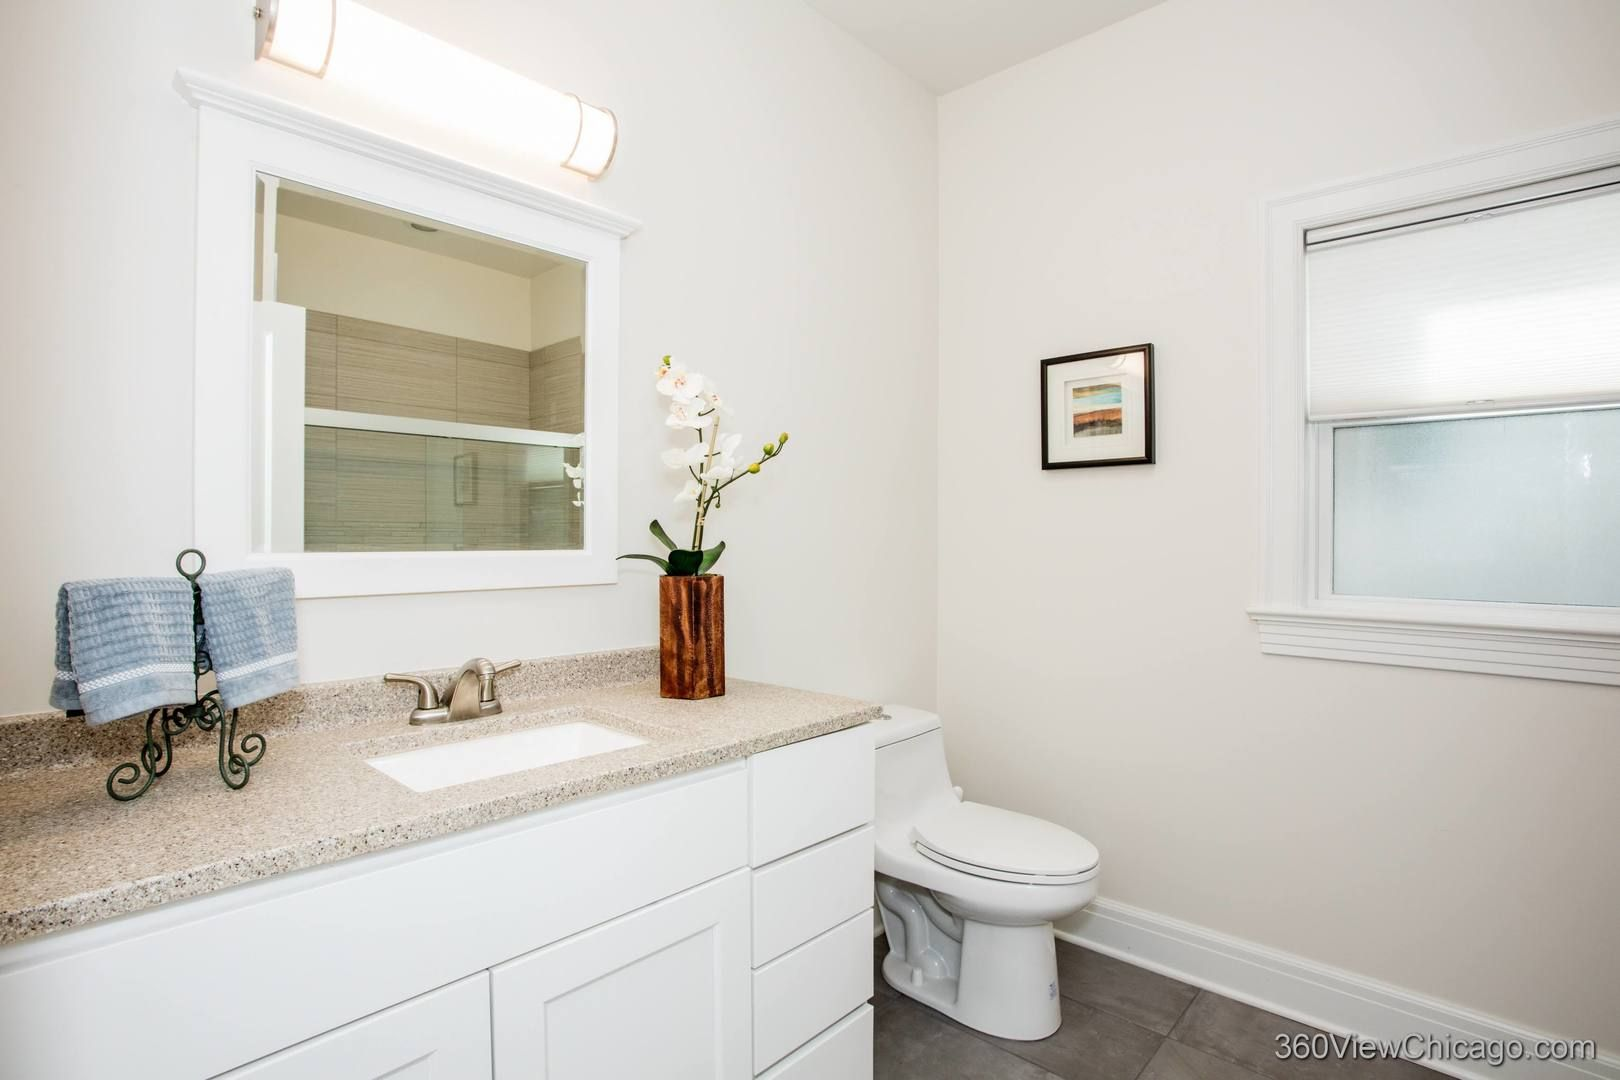 Photo 23: Photos: 1733 Troy Street in Chicago: CHI - Humboldt Park Residential for sale ()  : MLS®# 10911567